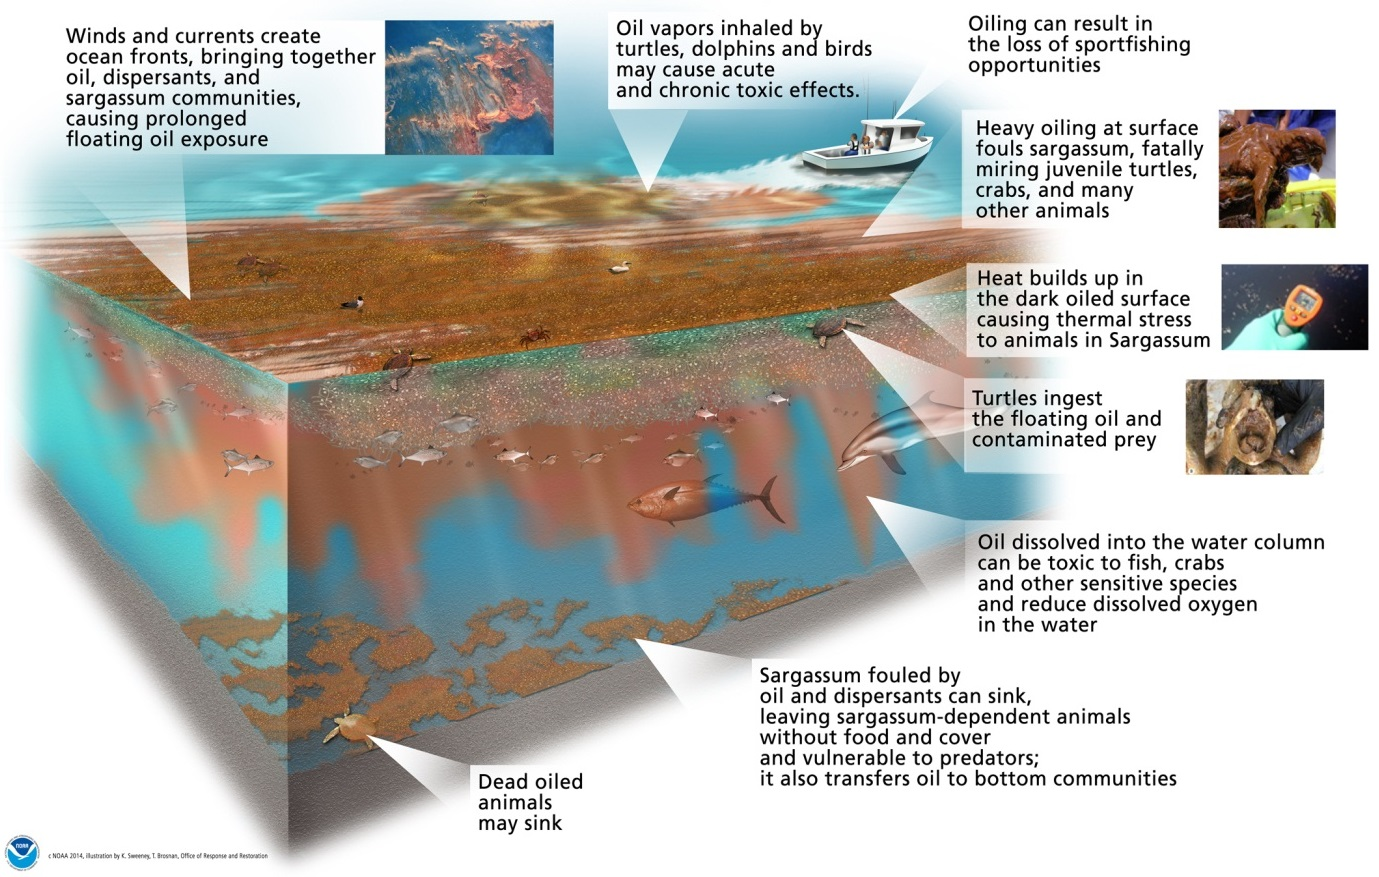 Illustration of the potential impacts of an oil spill on Sargassum and associated marine life in the water column. Image: NOAA Response and Restoration